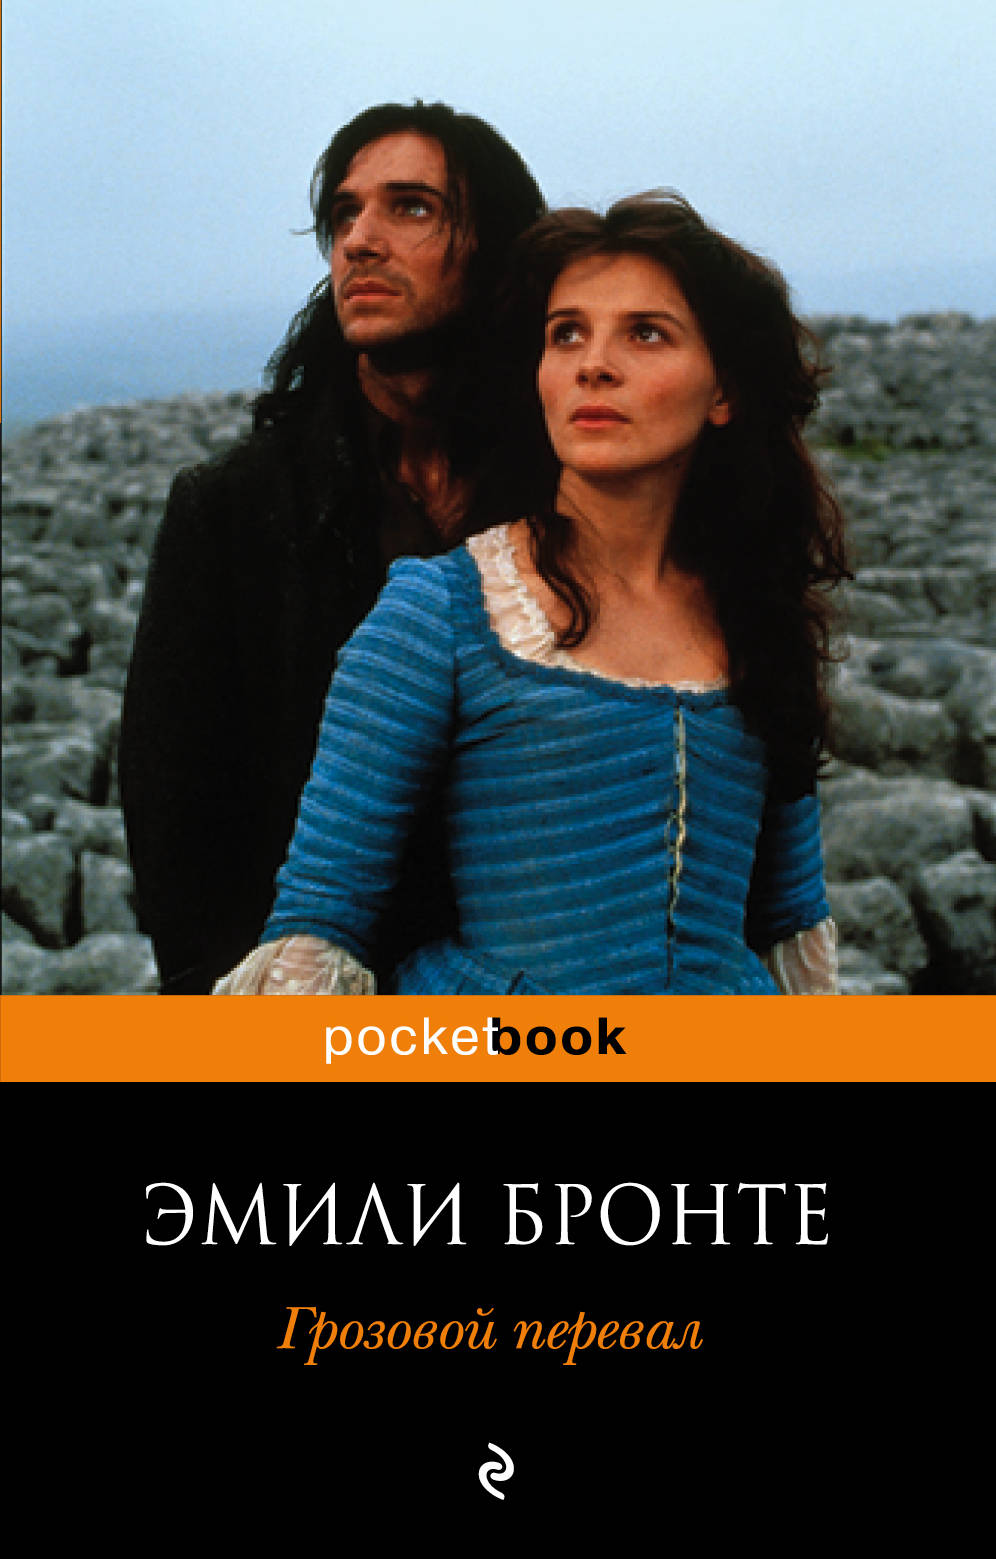 romeo and juliet vs wuthering heights Shmoop guide to bella and edward - cathy and heathcliff in eclipse while in new moon she chooses romeo and juliet wuthering heights tells the story of the.